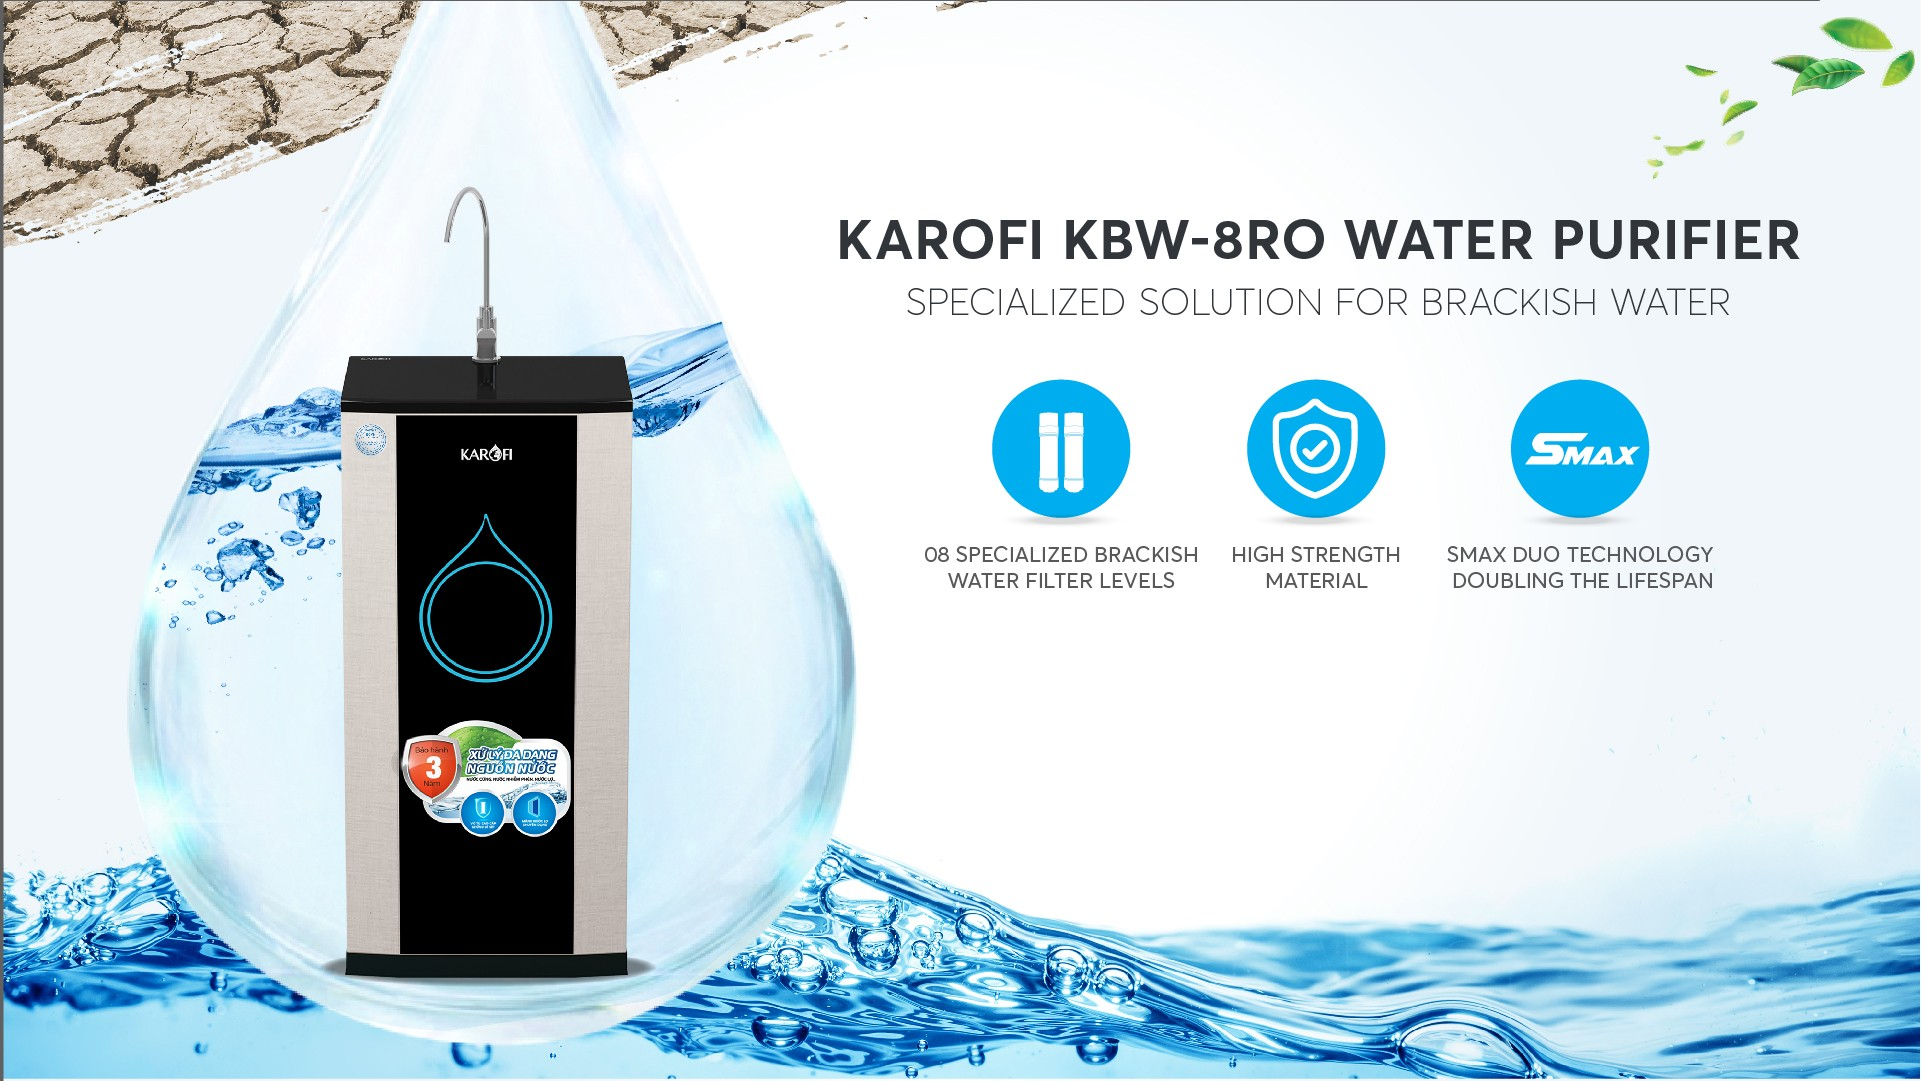 karofi-kbw-8ro-brackish-water-purifier-1